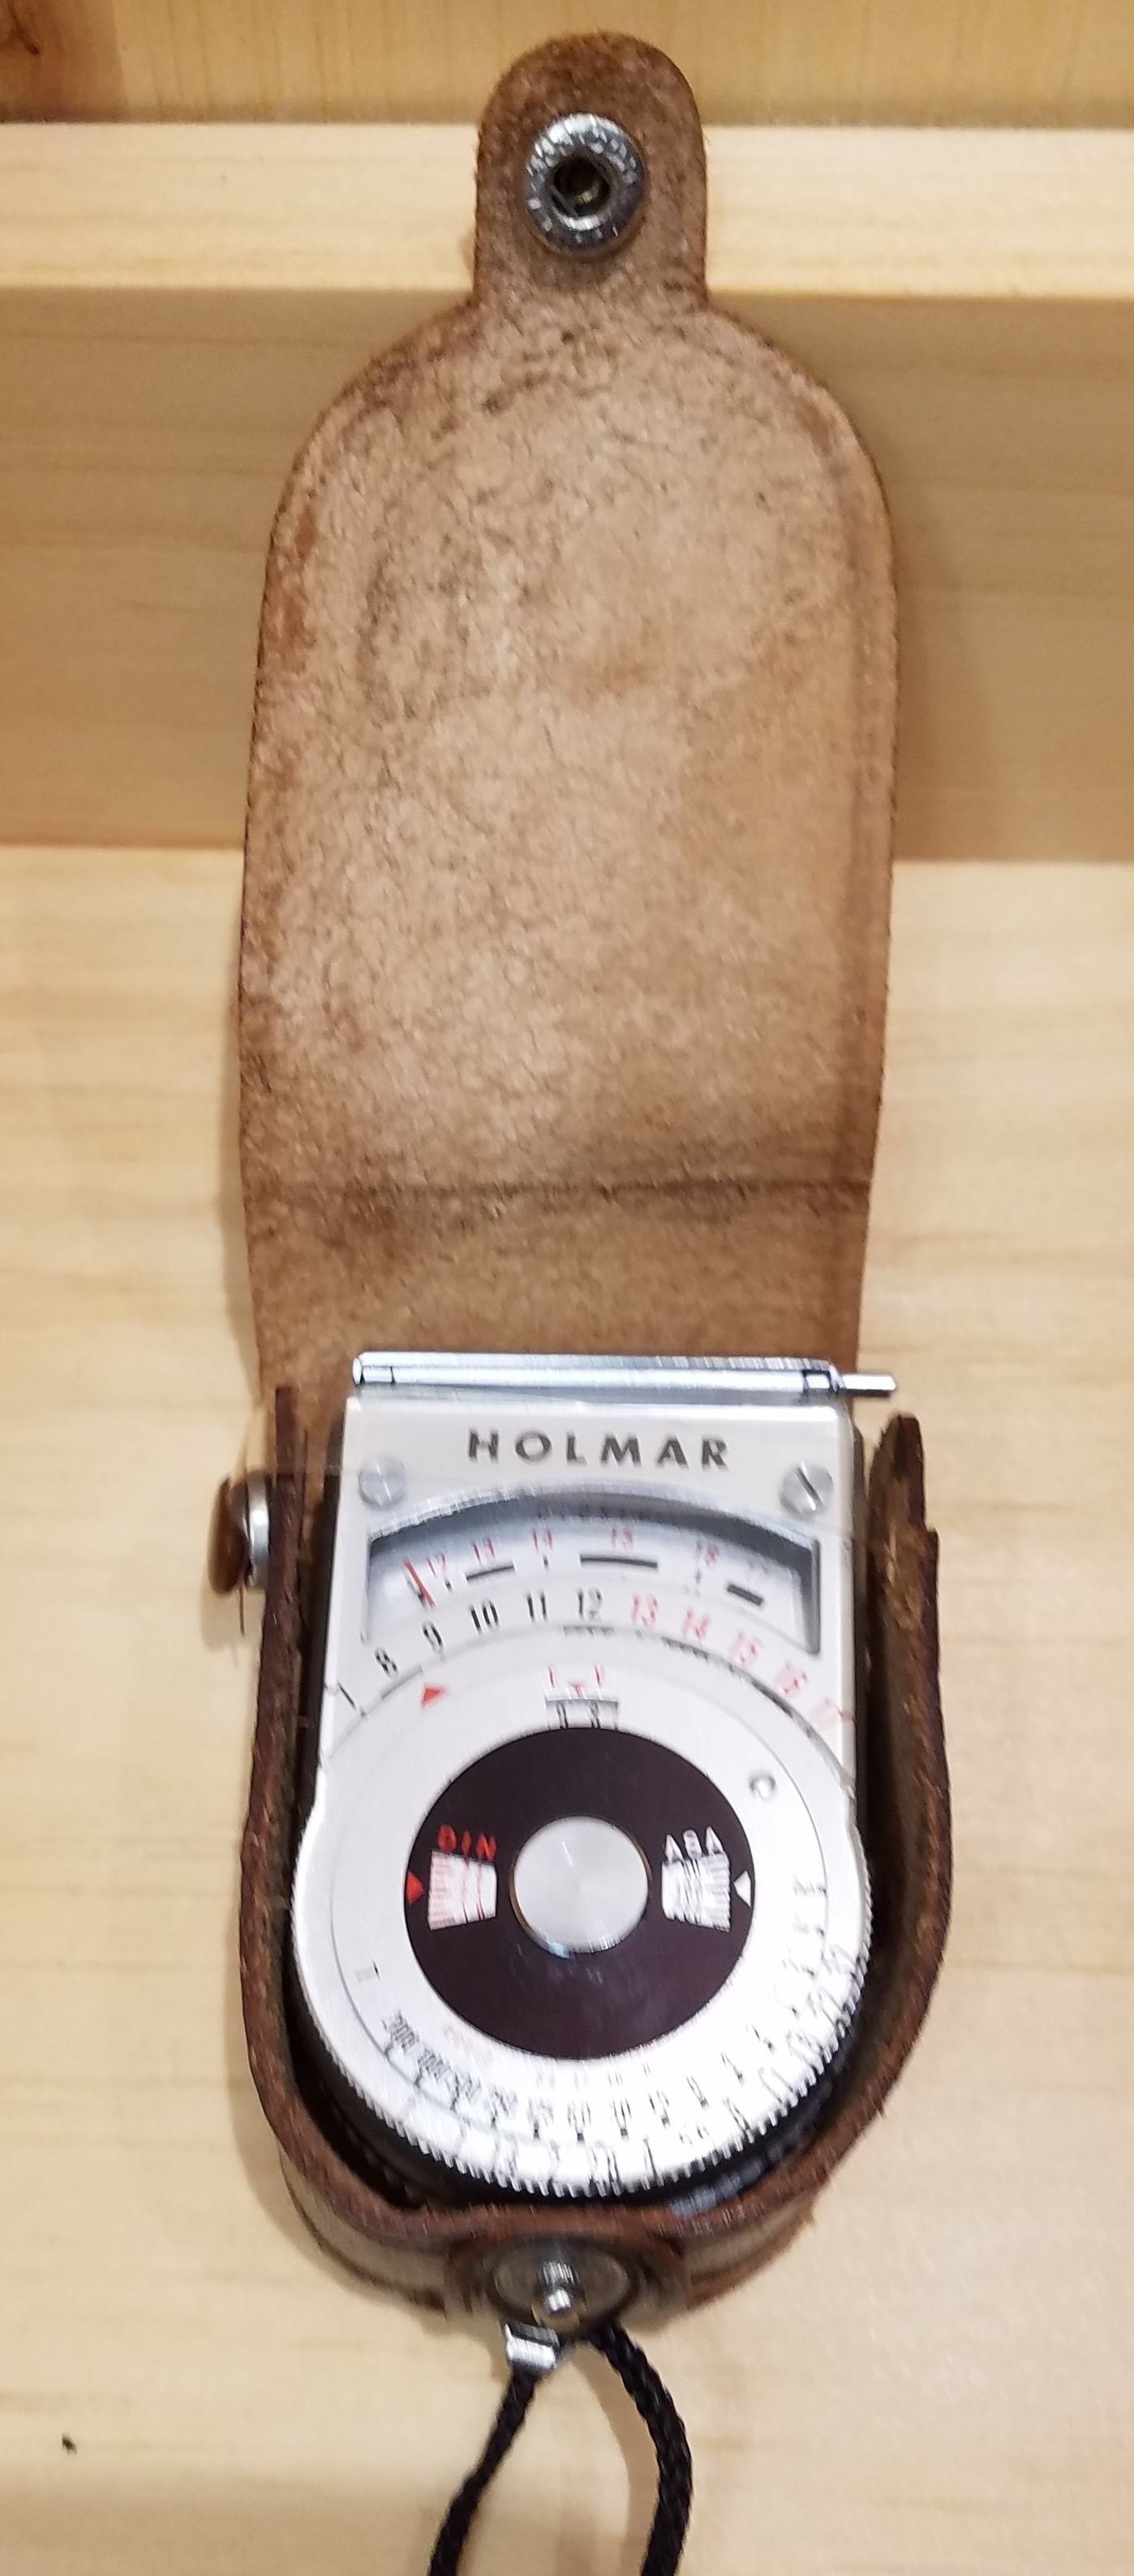 HOLMAR  CA 411  LIGHT METER CAMERA EQUIPMENT